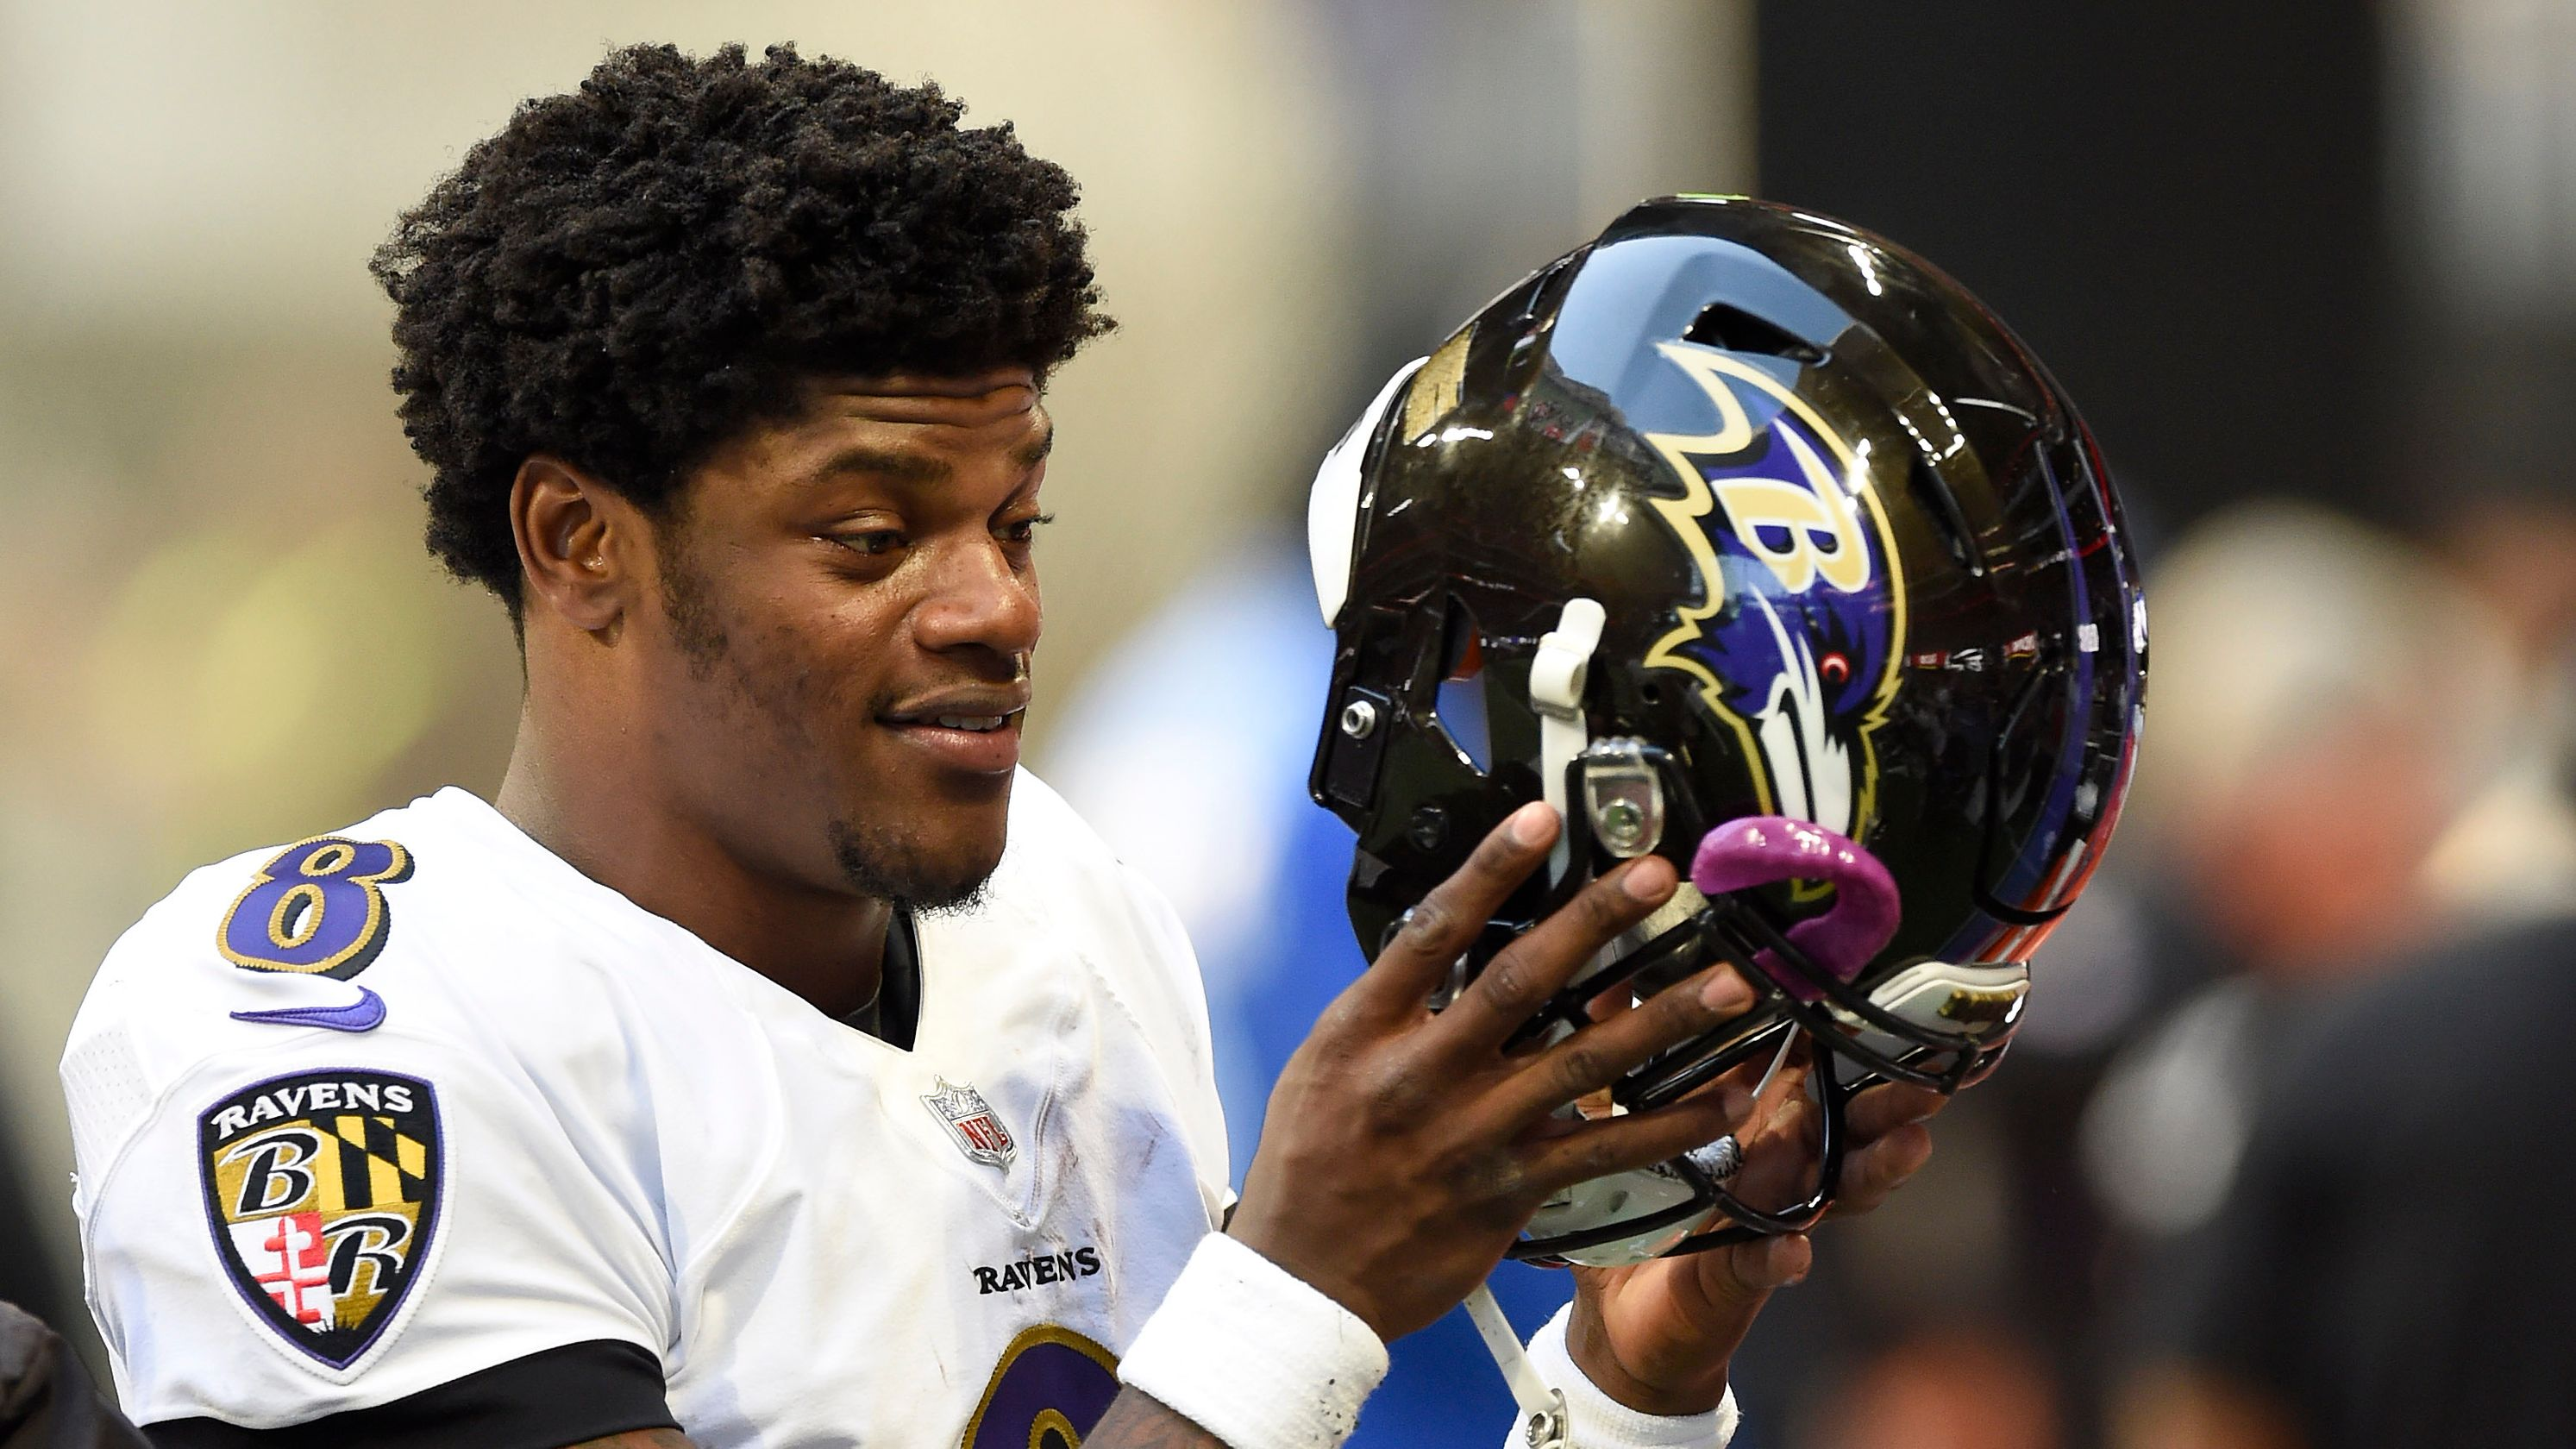 The Ravens have a Lamar Jackson problem that's bigger than Joe Flacco's potential return